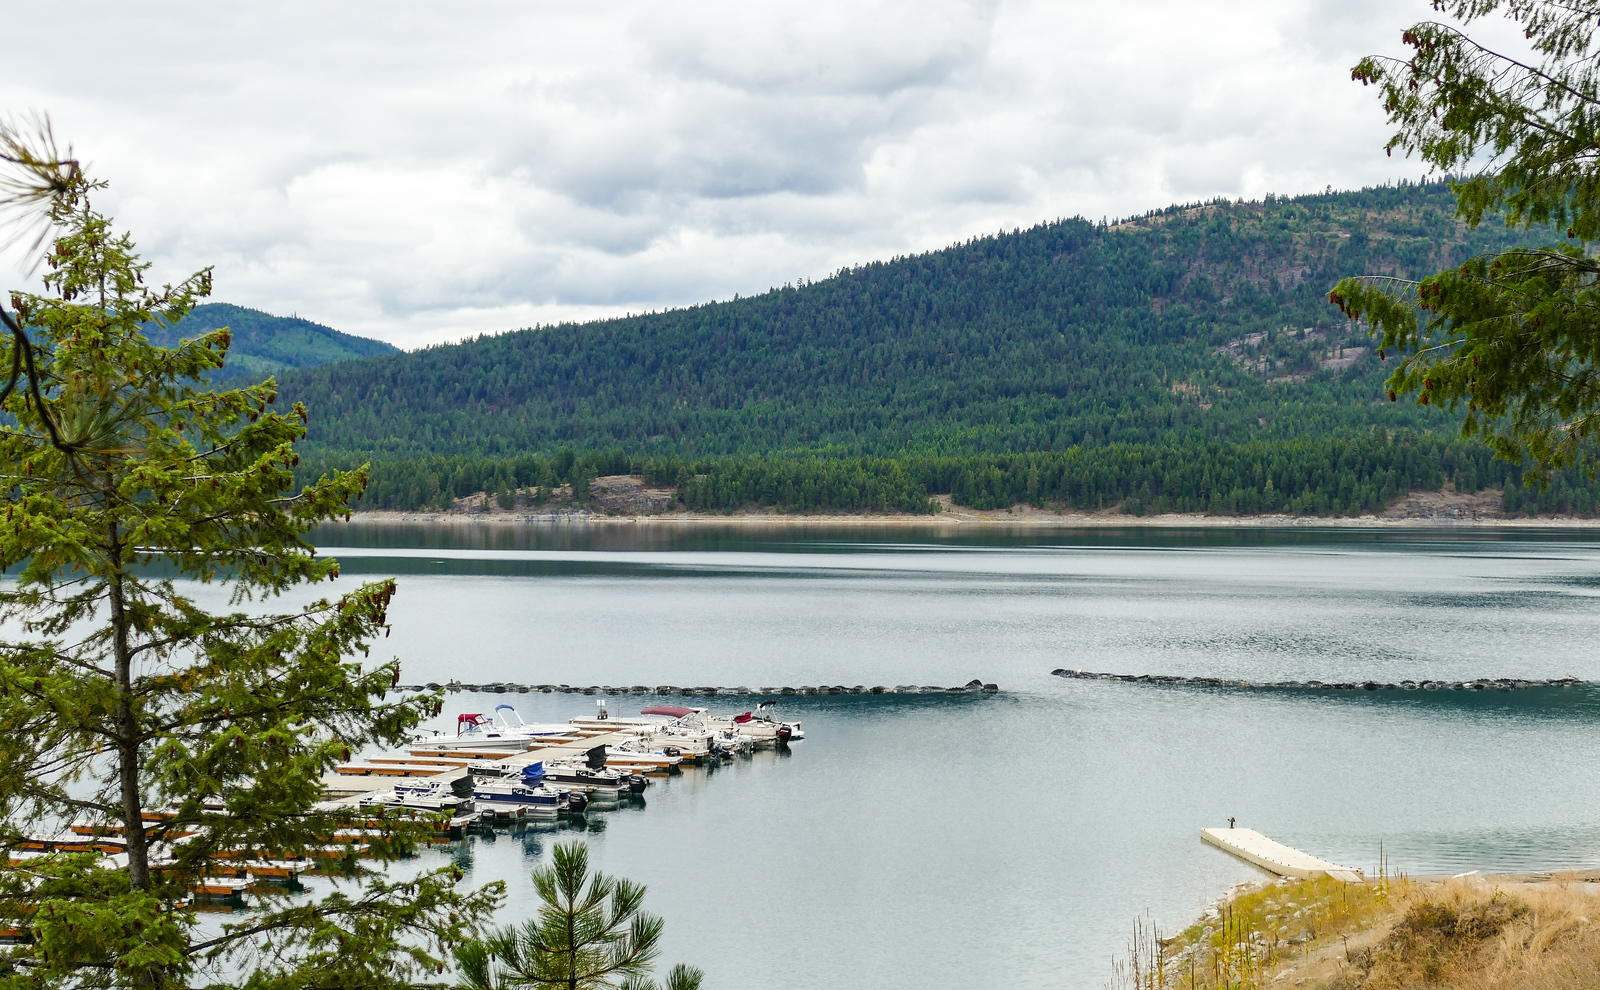 Drive the Lake Koocanusa Scenic Byway during your stay at Coyote Bluff Estate in Somers, Montana.